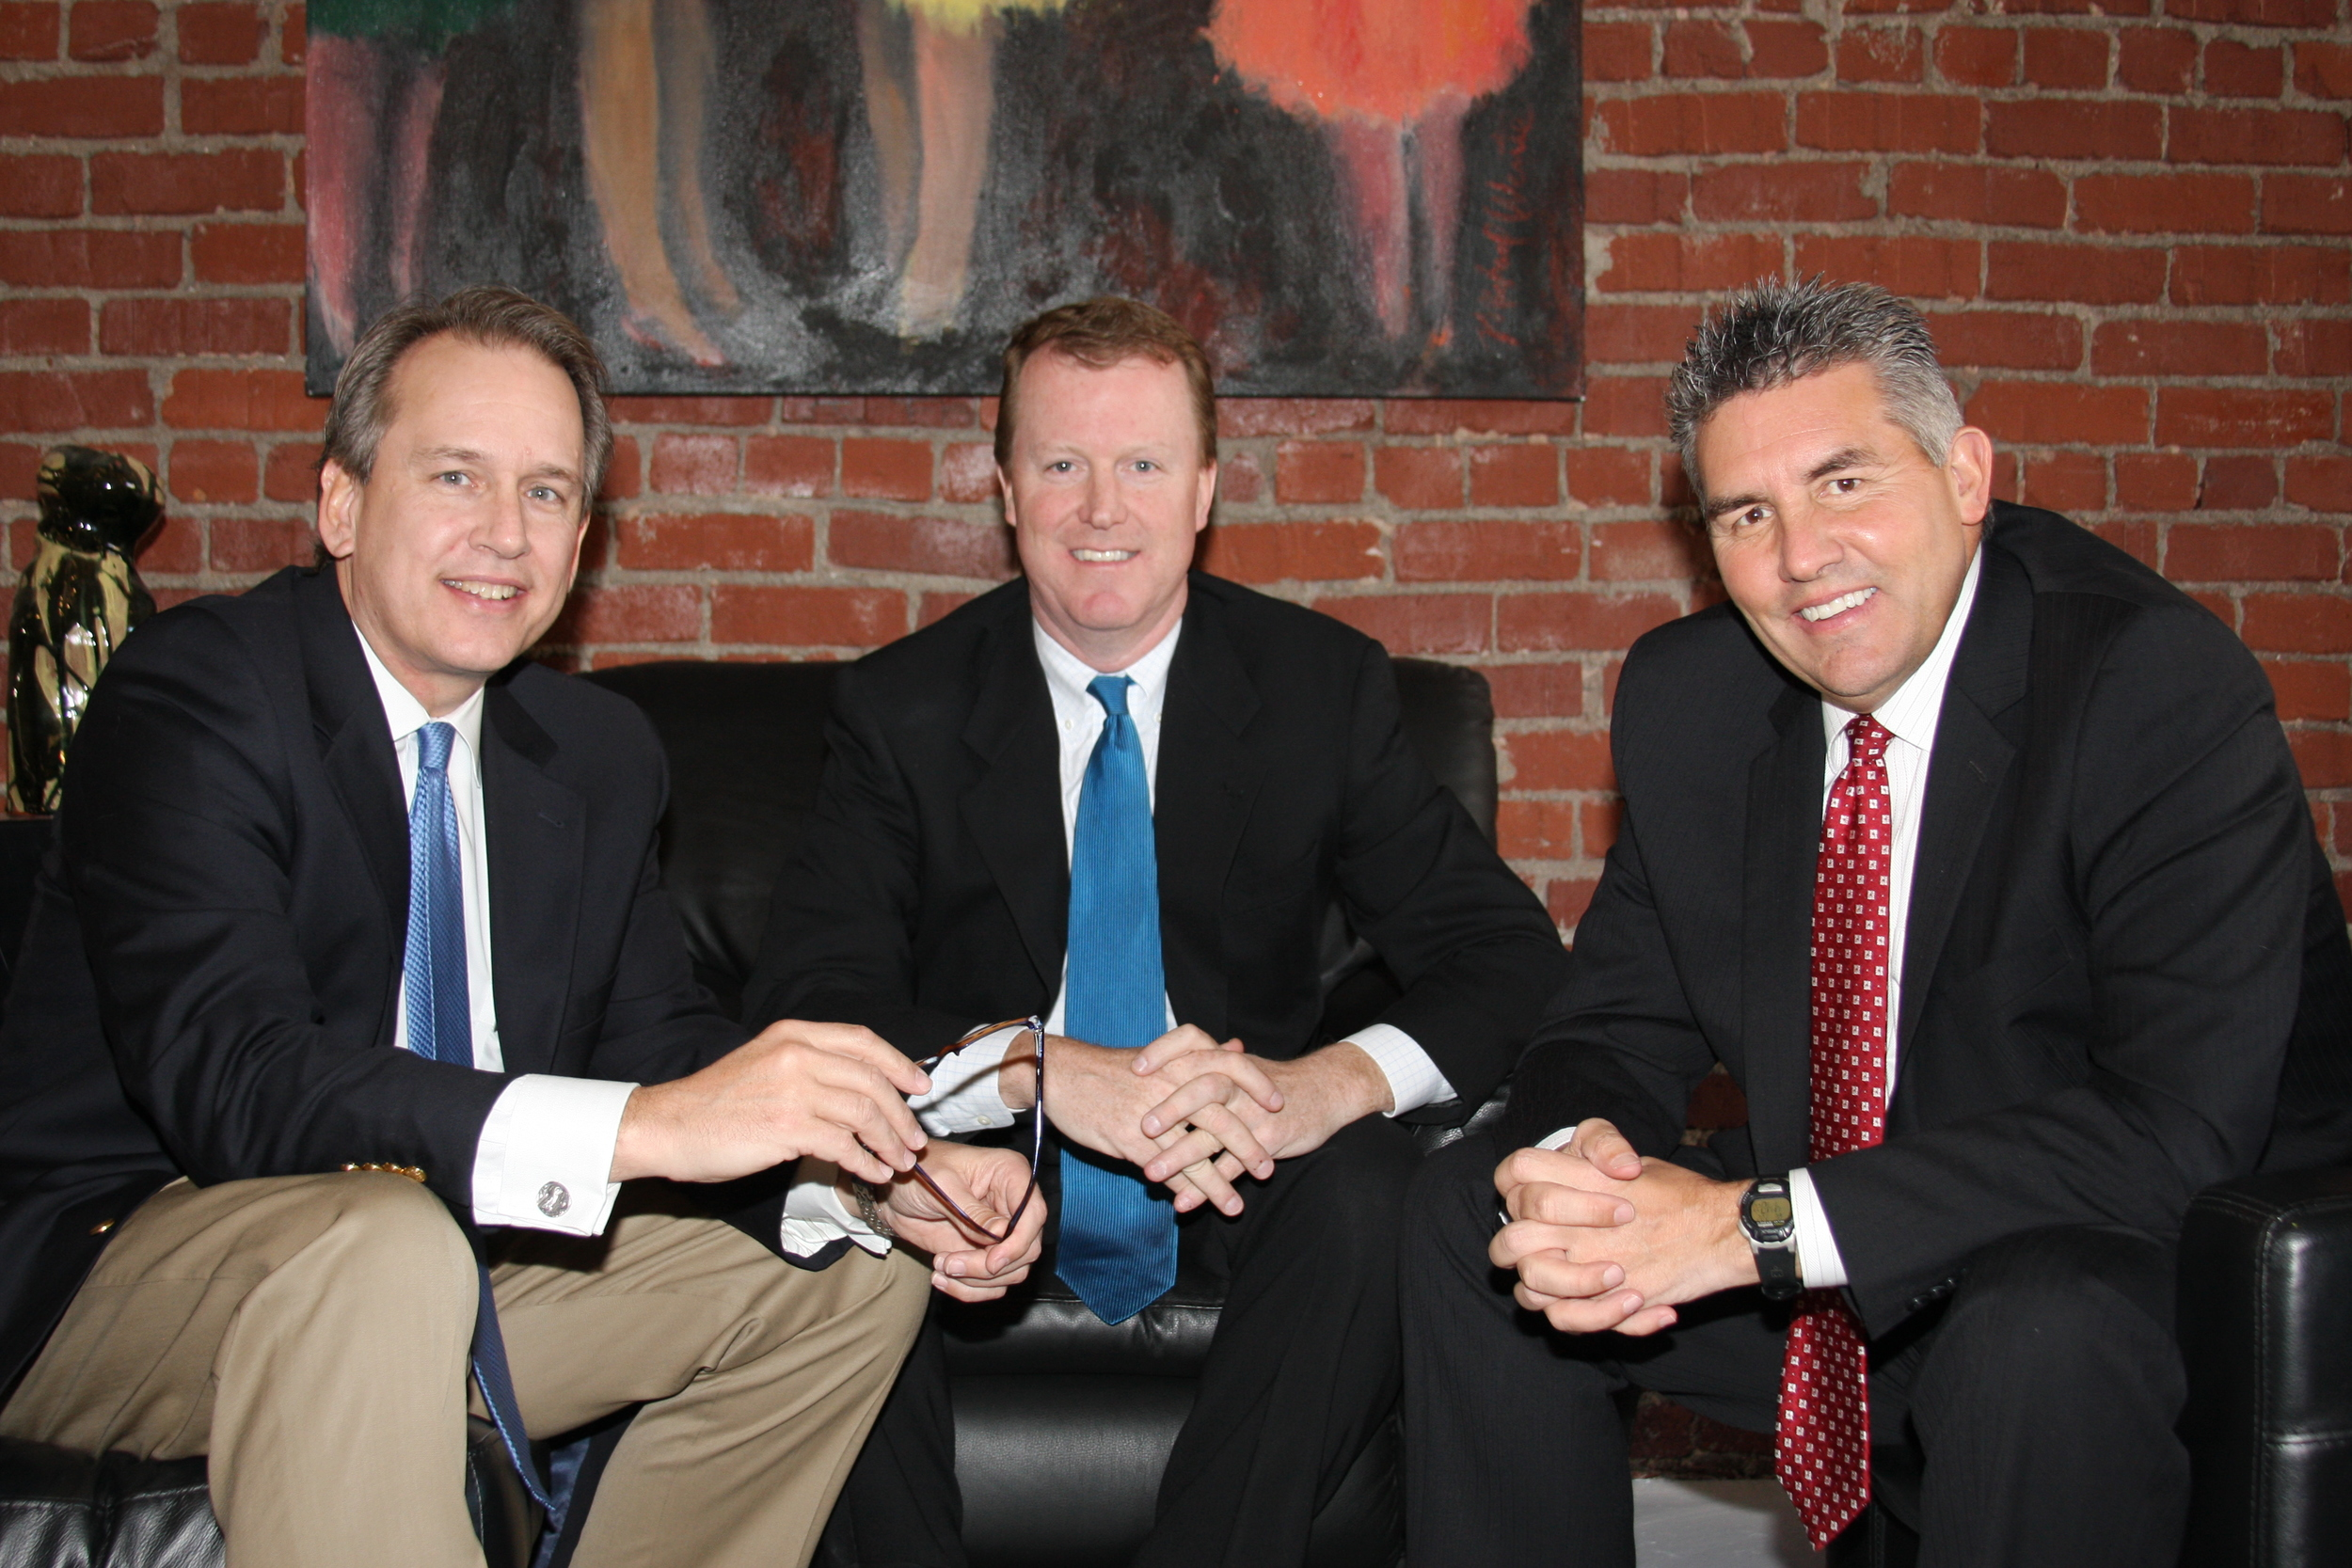 Bill Crandall, Dan Carr and Rick Baier of CBC Real Estate Group.